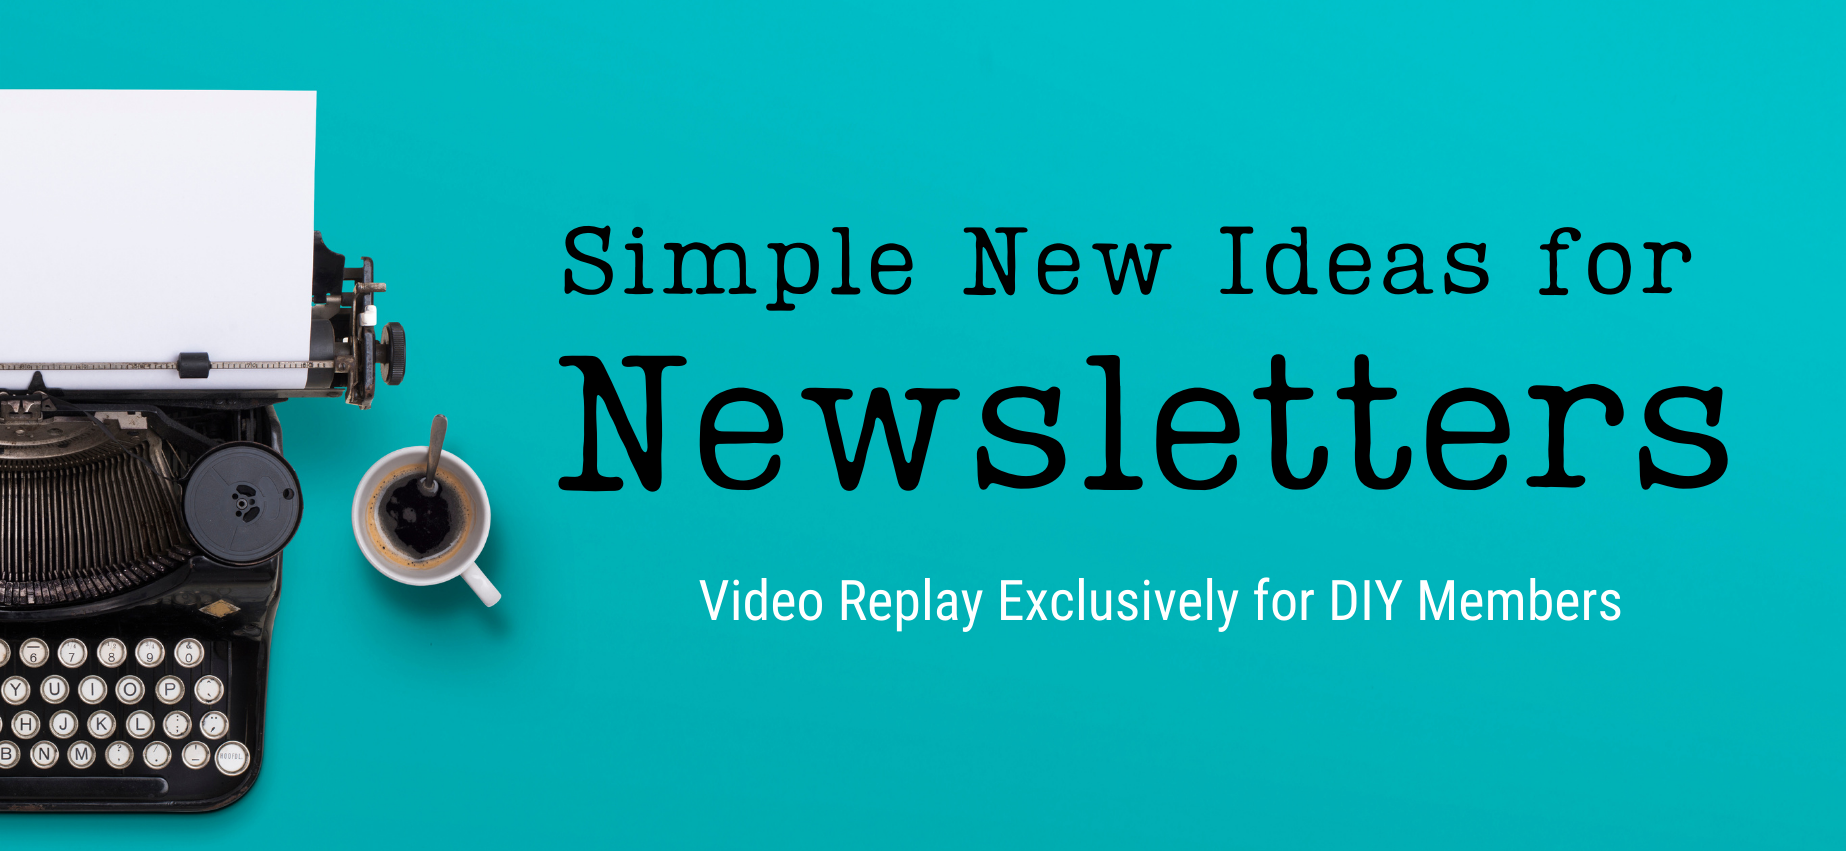 ICYMI: Simple New Ideas for Newsletters